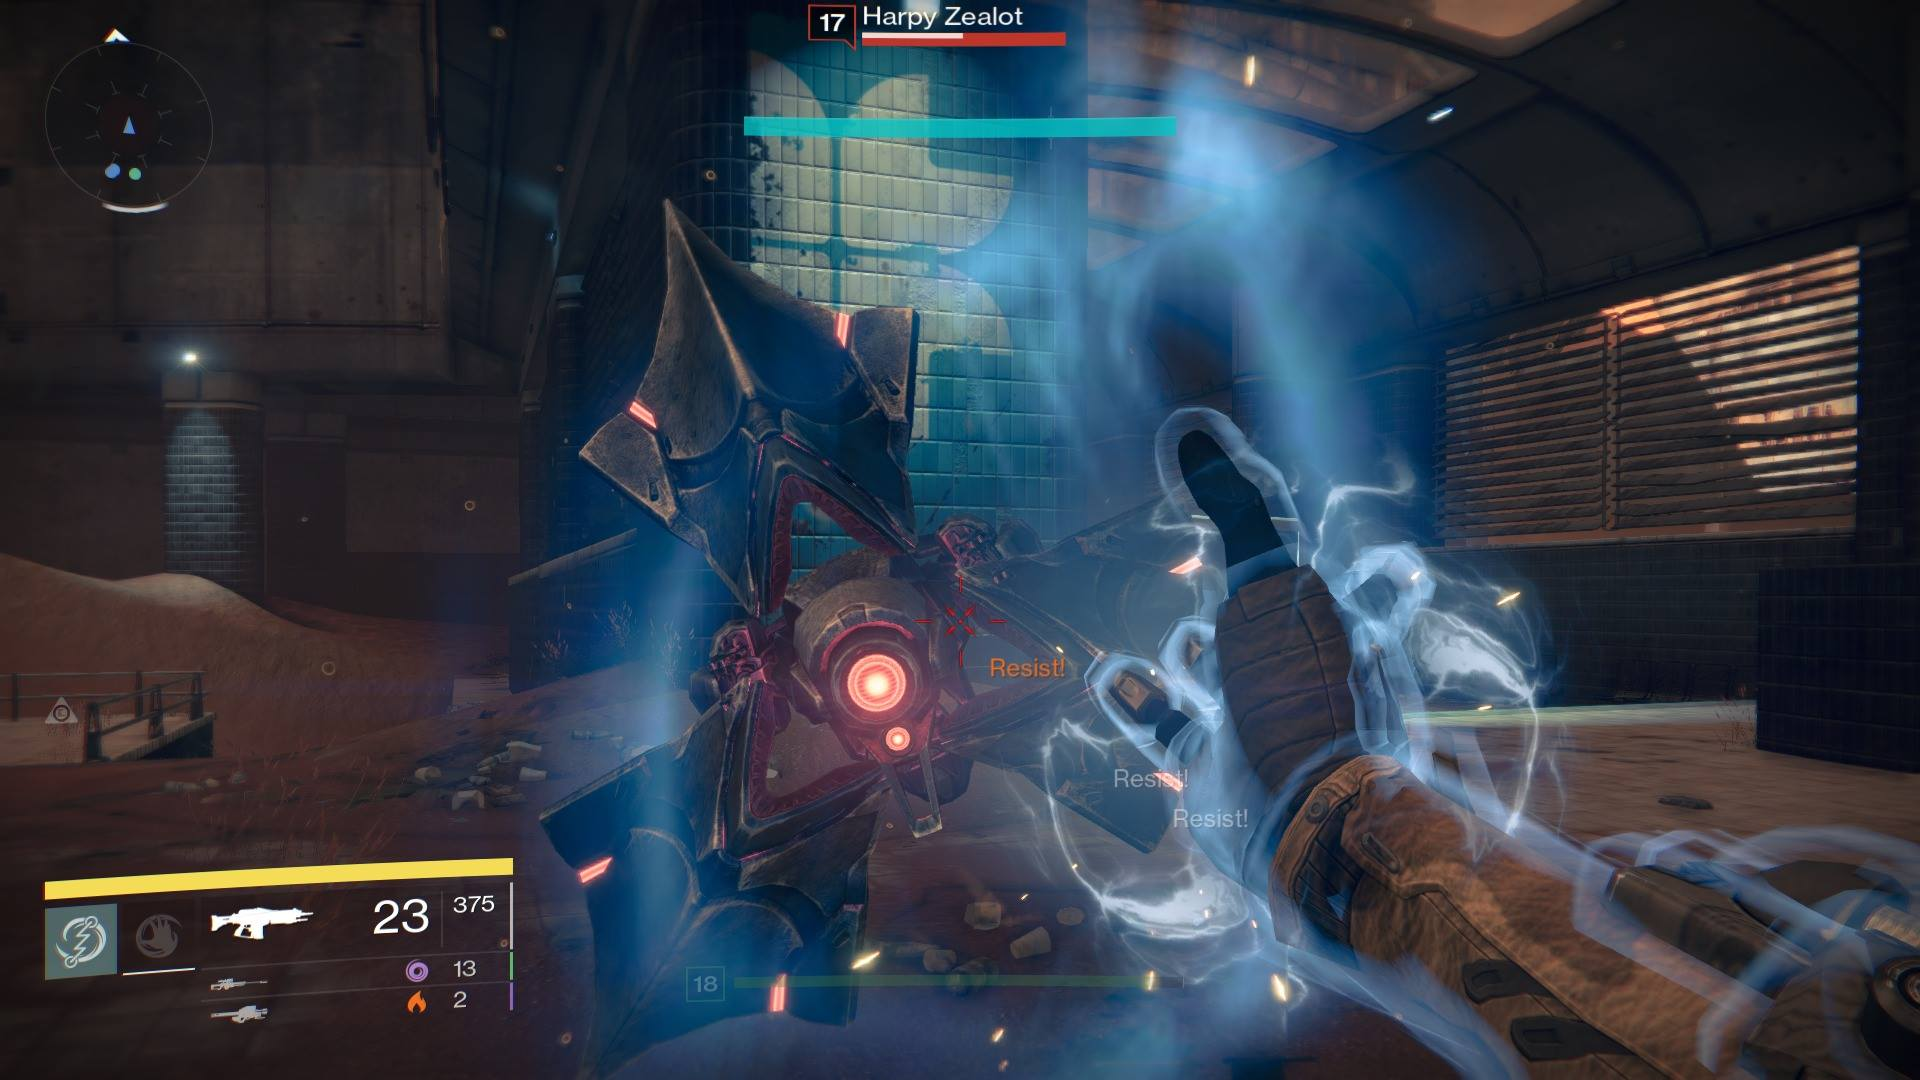 Destiny has some of the most satisfying melee attacks in any FPS.